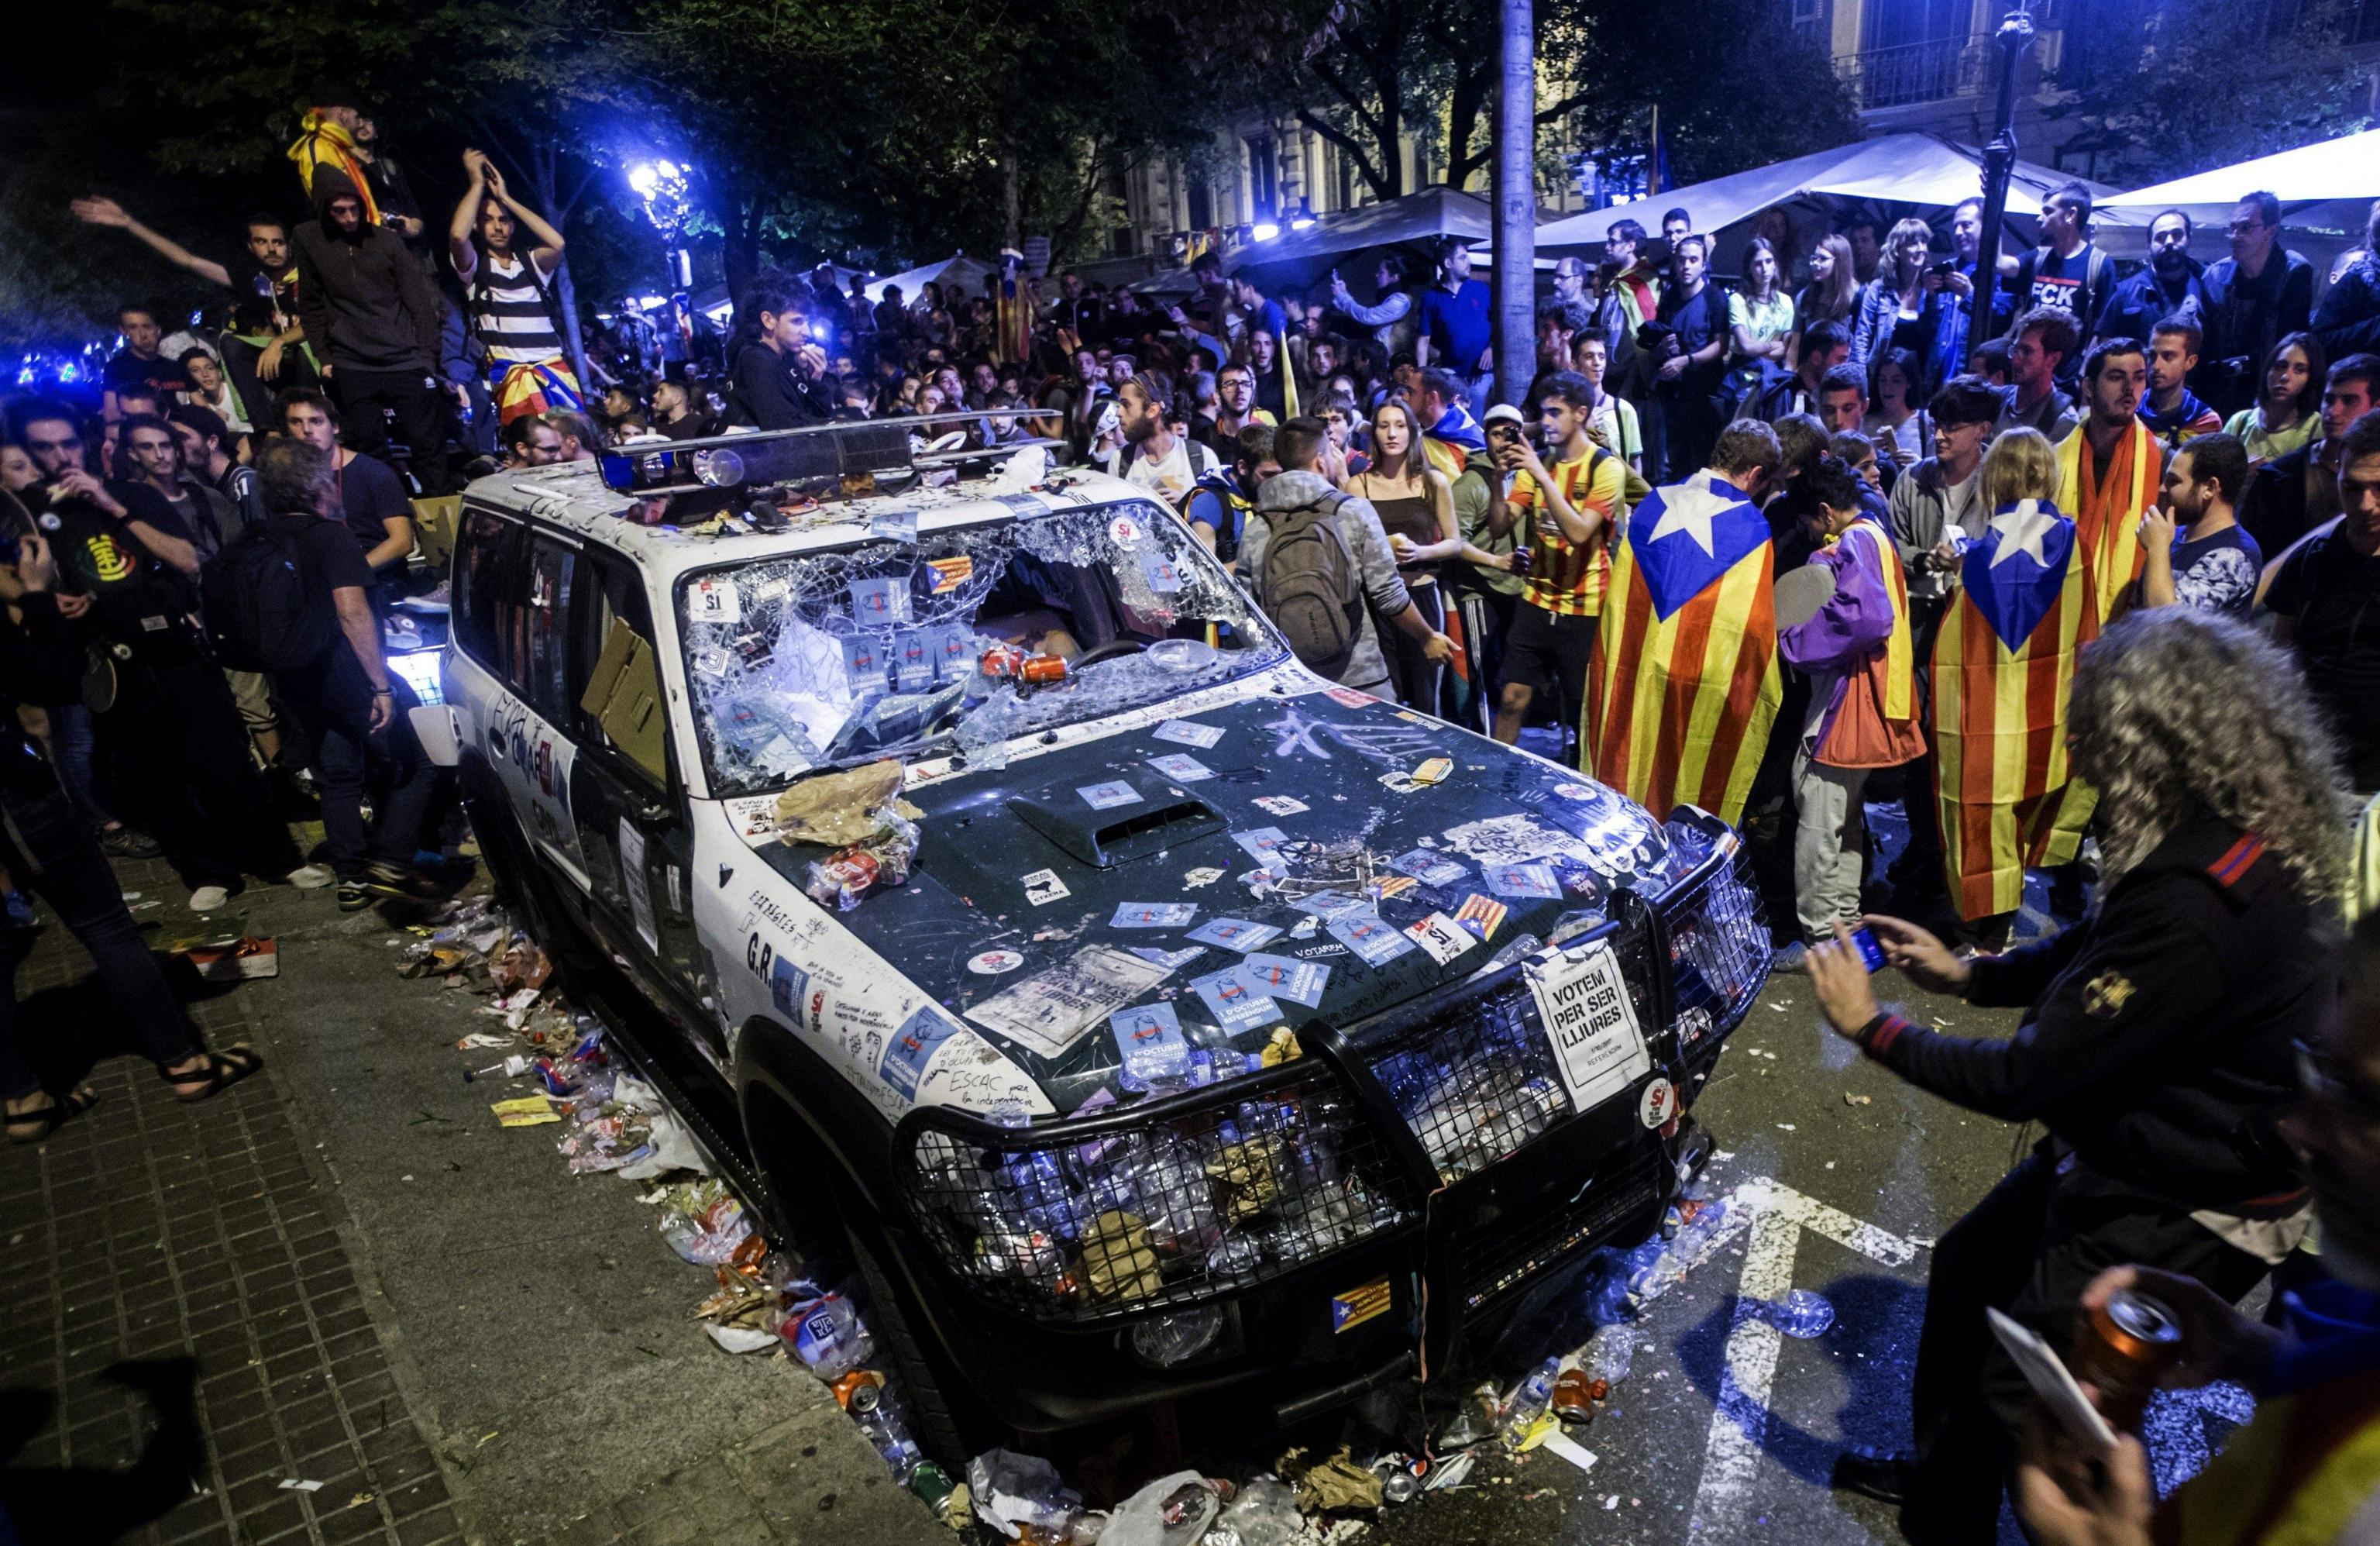 Riots in Barcelona